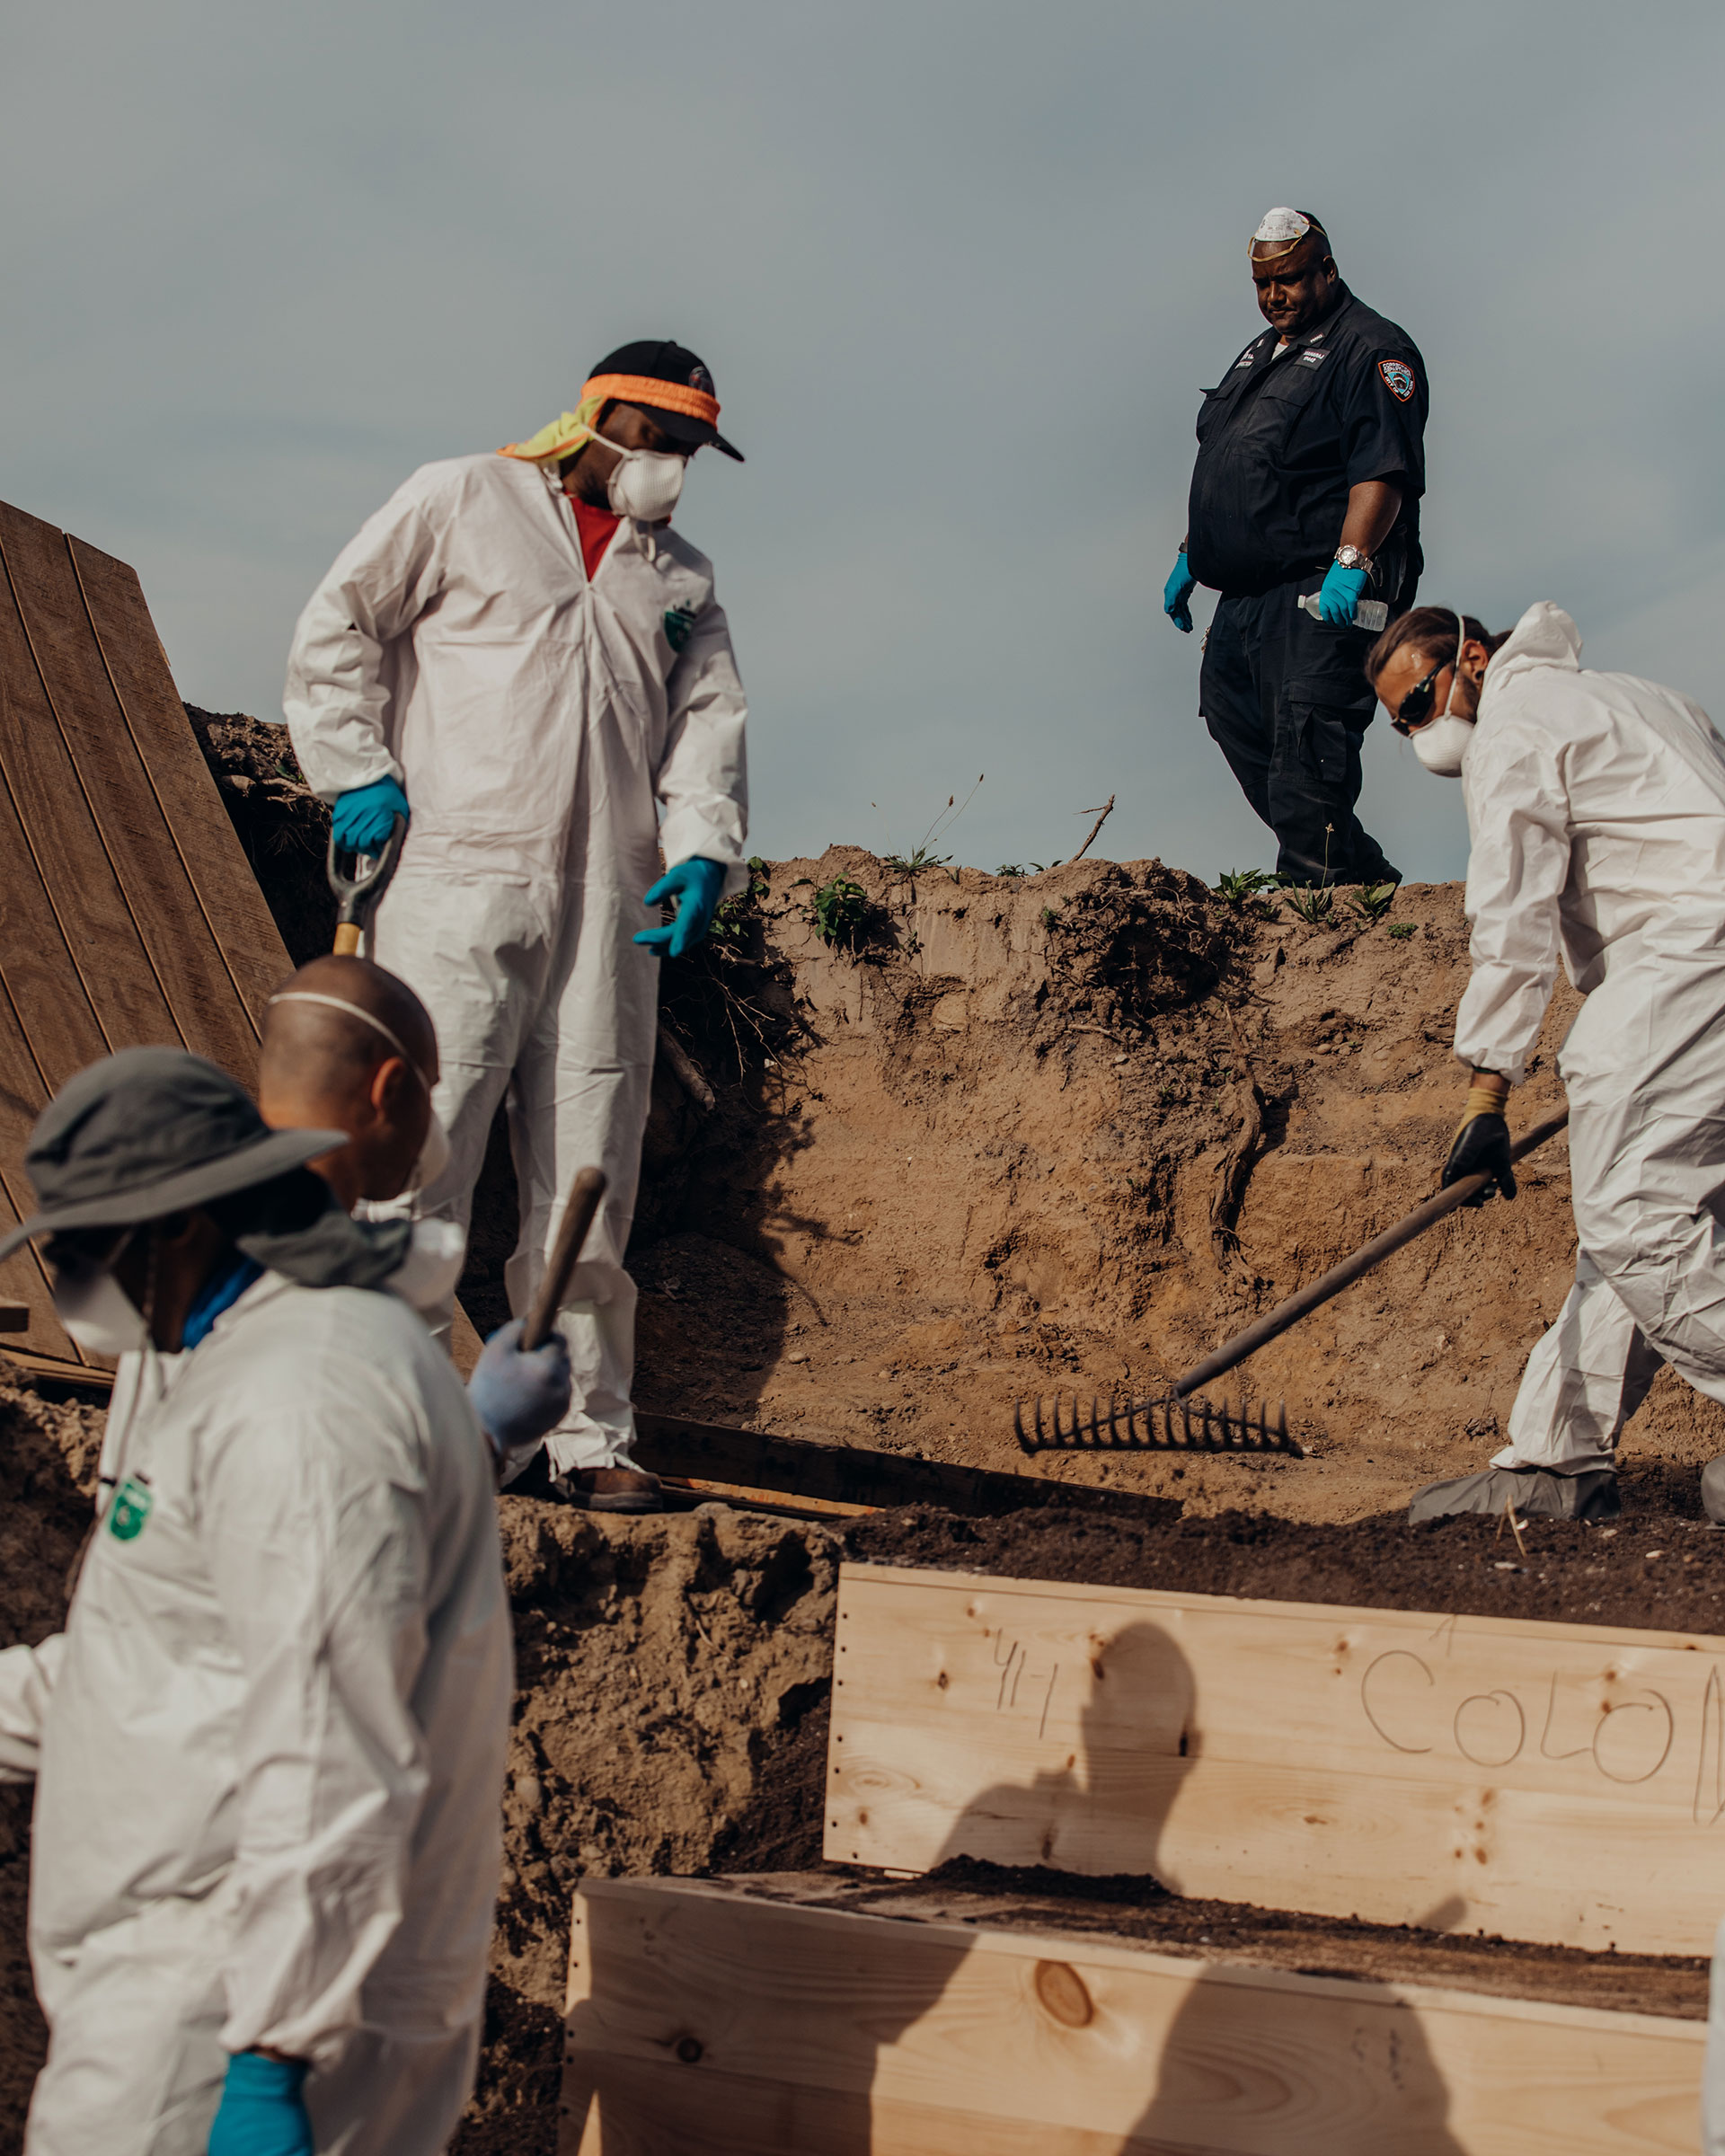 Workers place pine caskets inside a mass grave on Hart Island while correction officers look on.